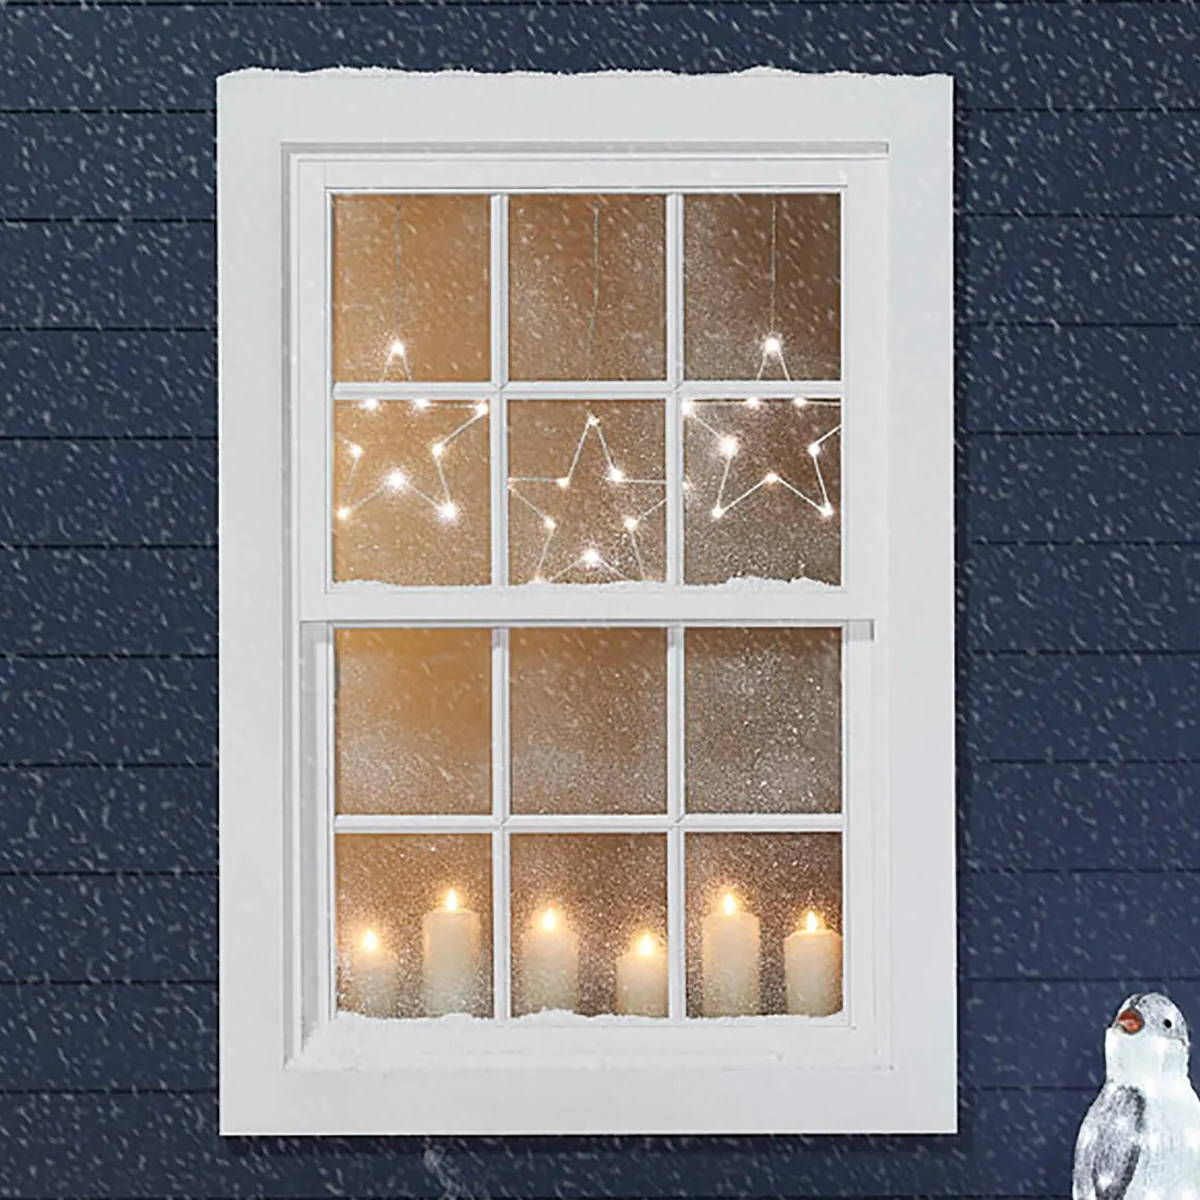 A outdoor view of a blue house at Christmas. In the window there are candles and star lights hanging above.